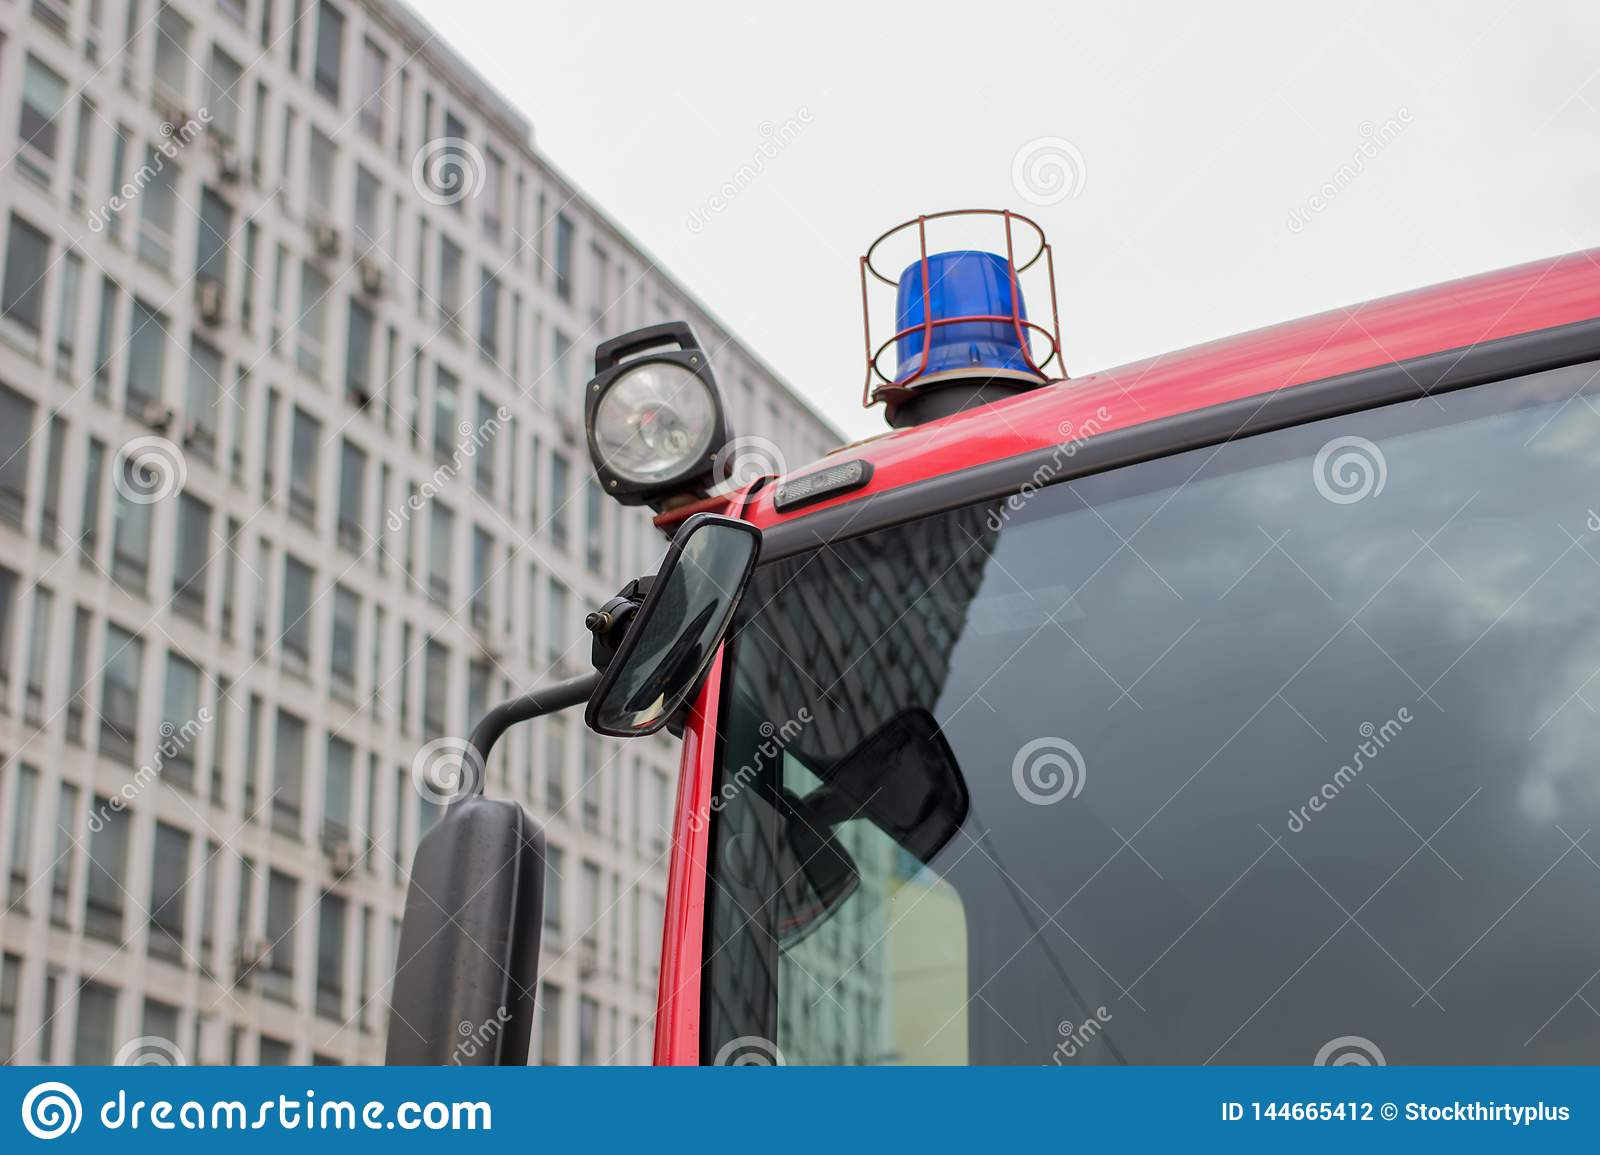 Close-up picture of blue lights and sirens on a fire-truck